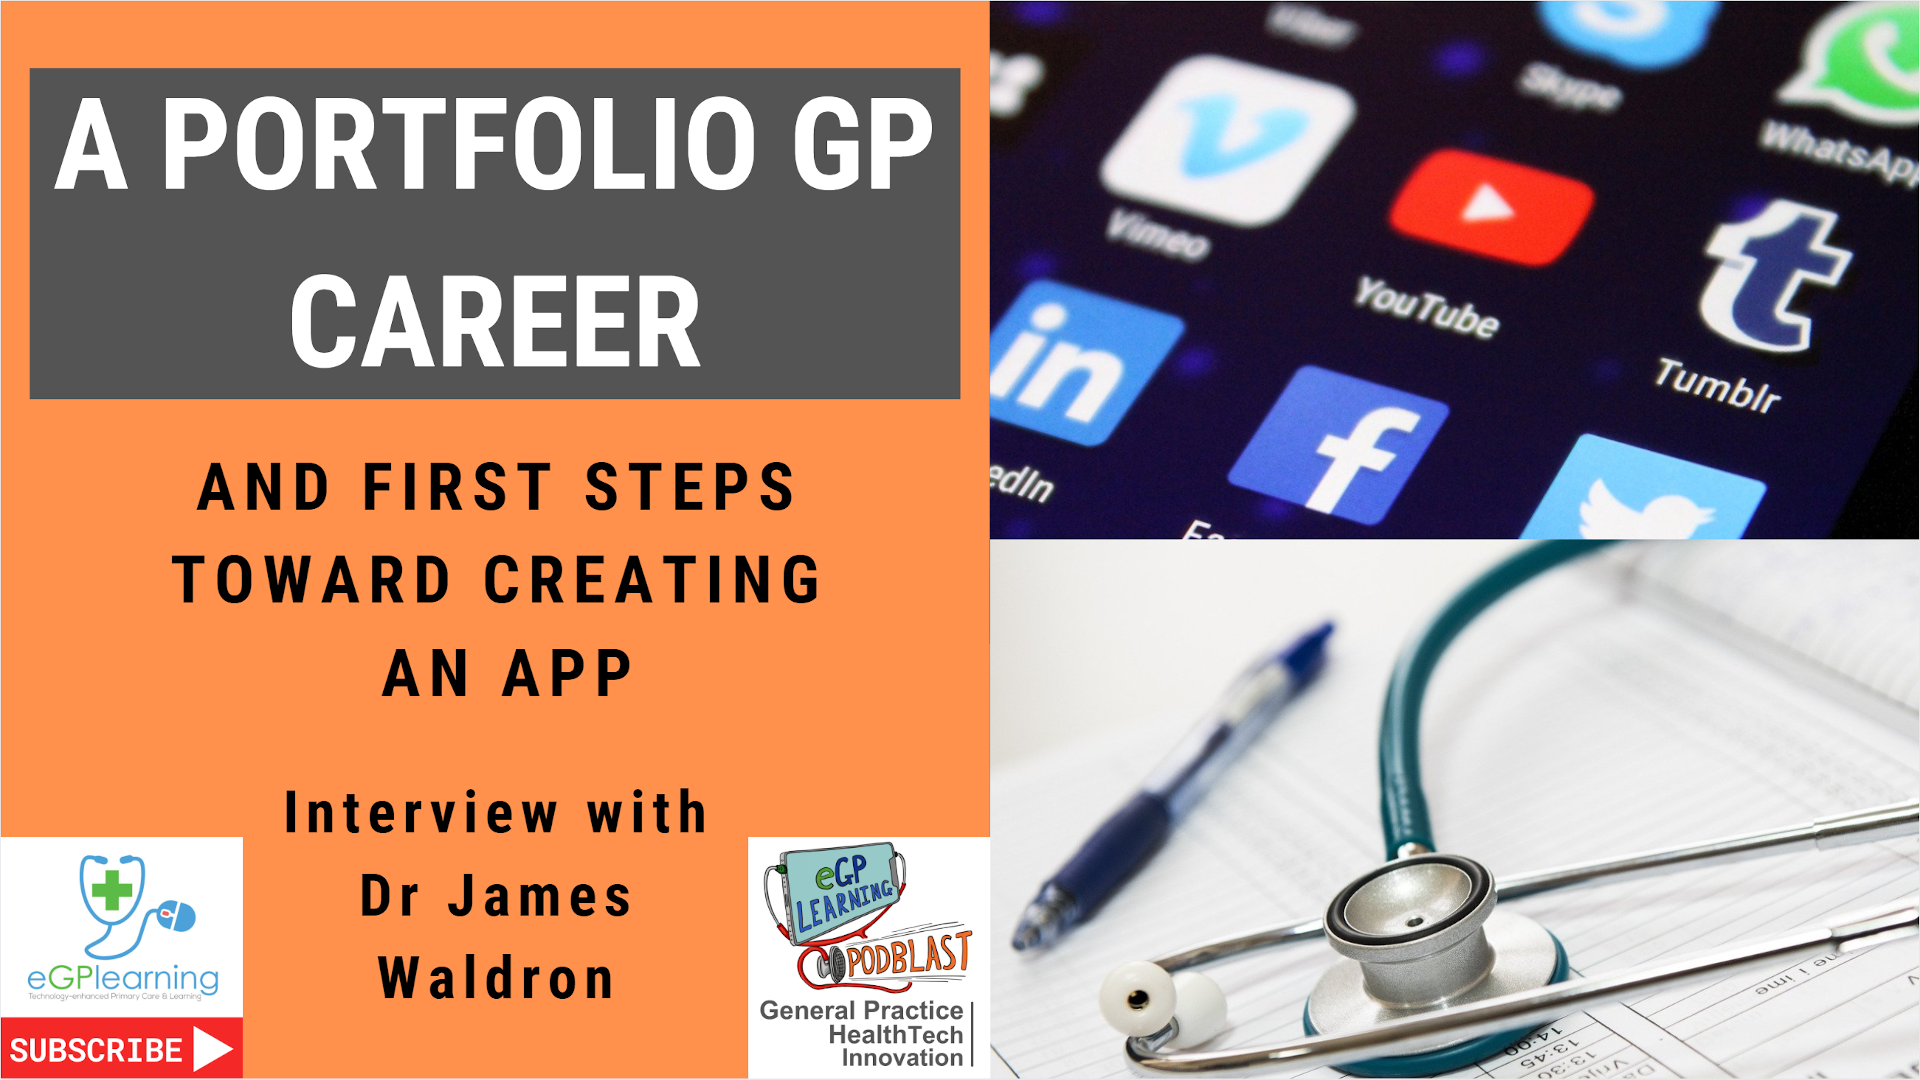 A portfolio GP Career with Dr James Waldron